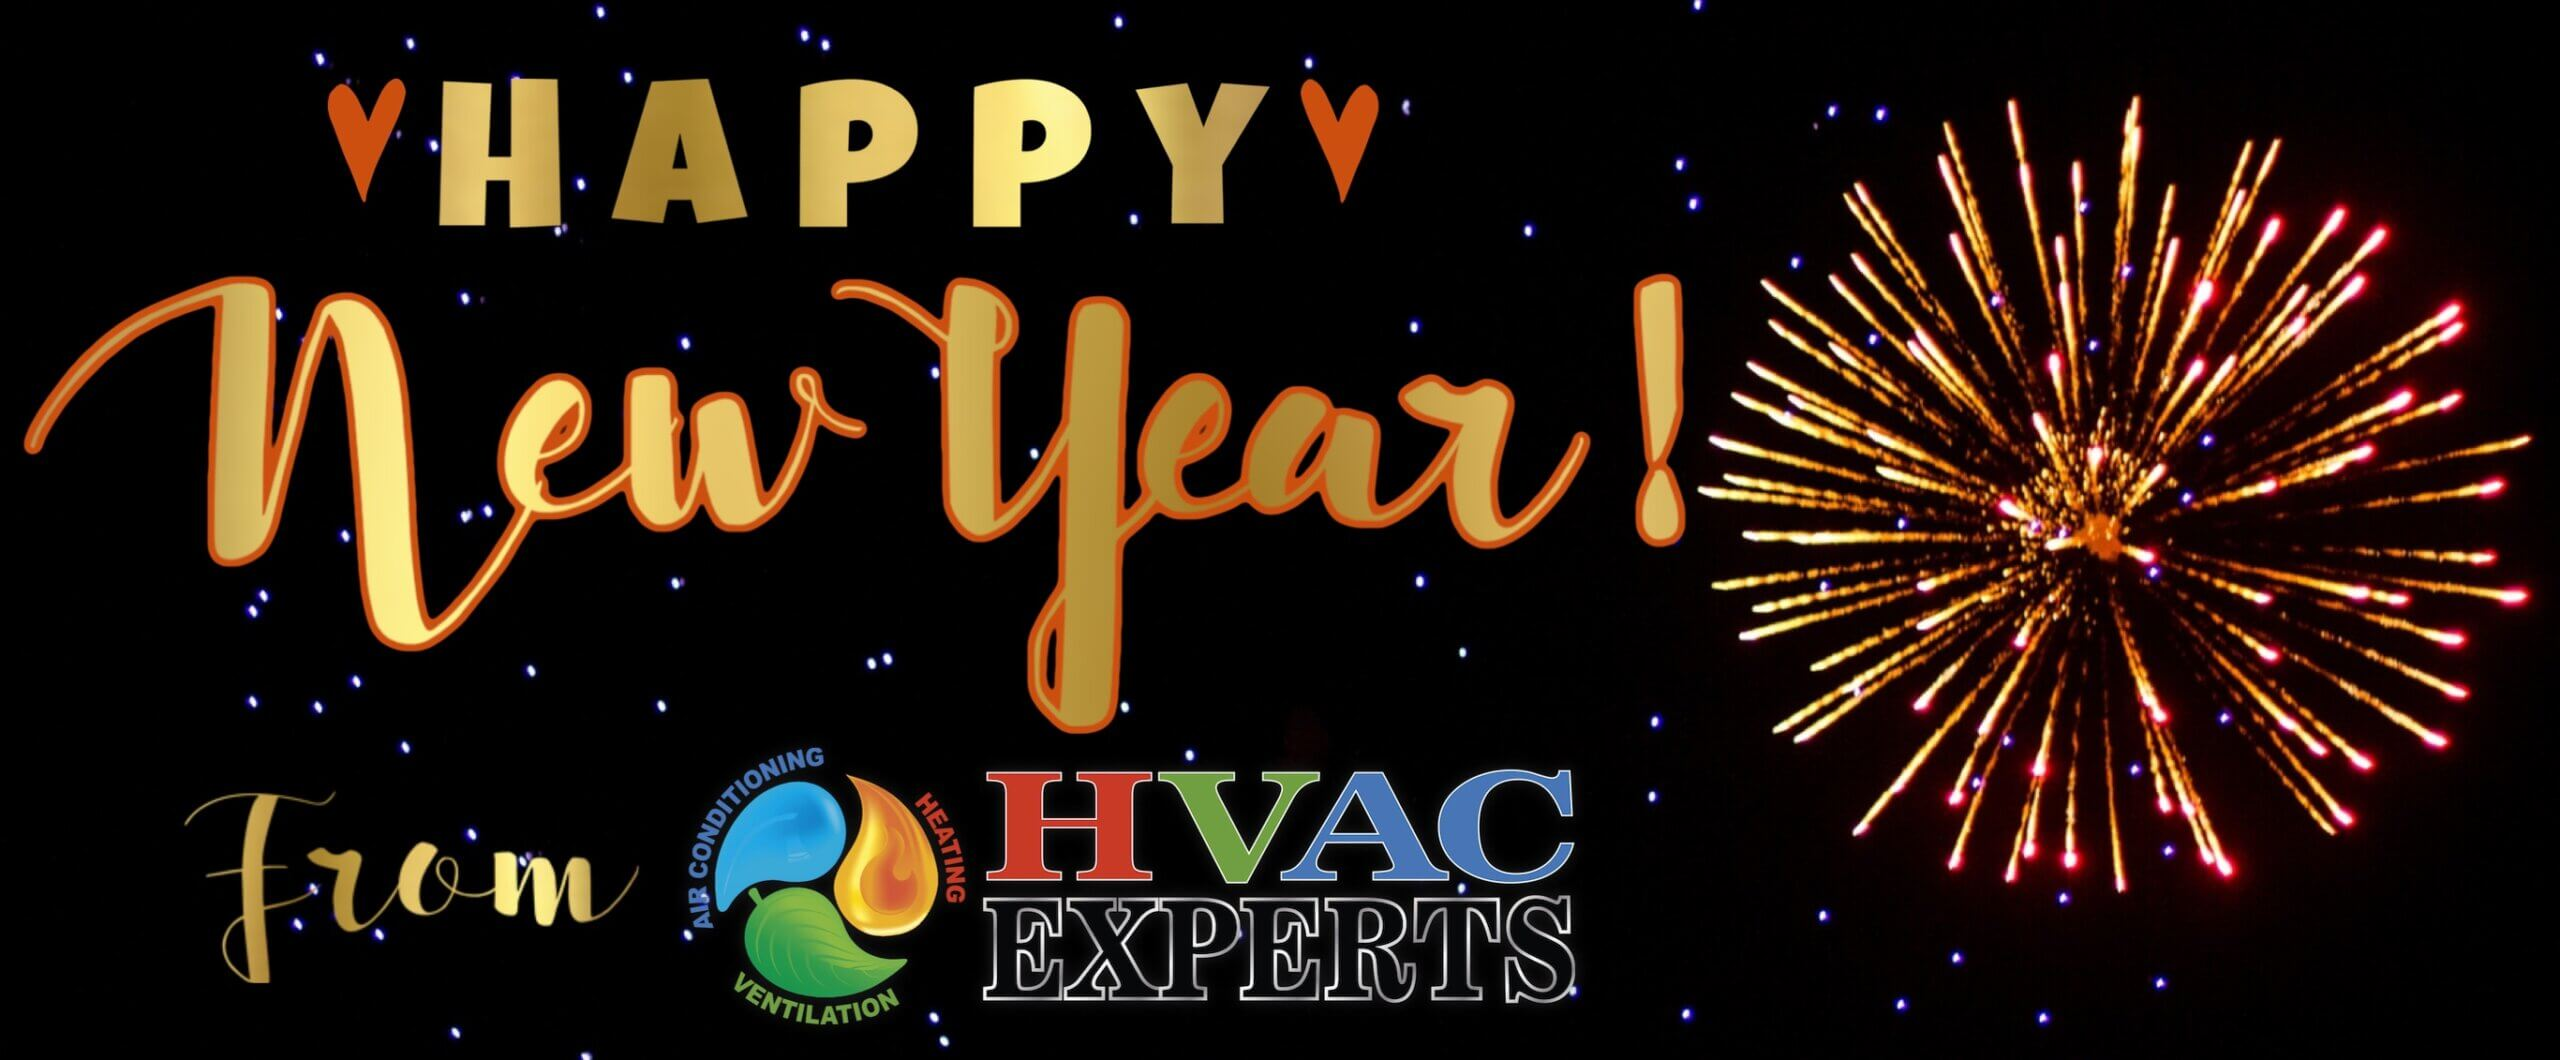 Happy New Year from HVAC Experts